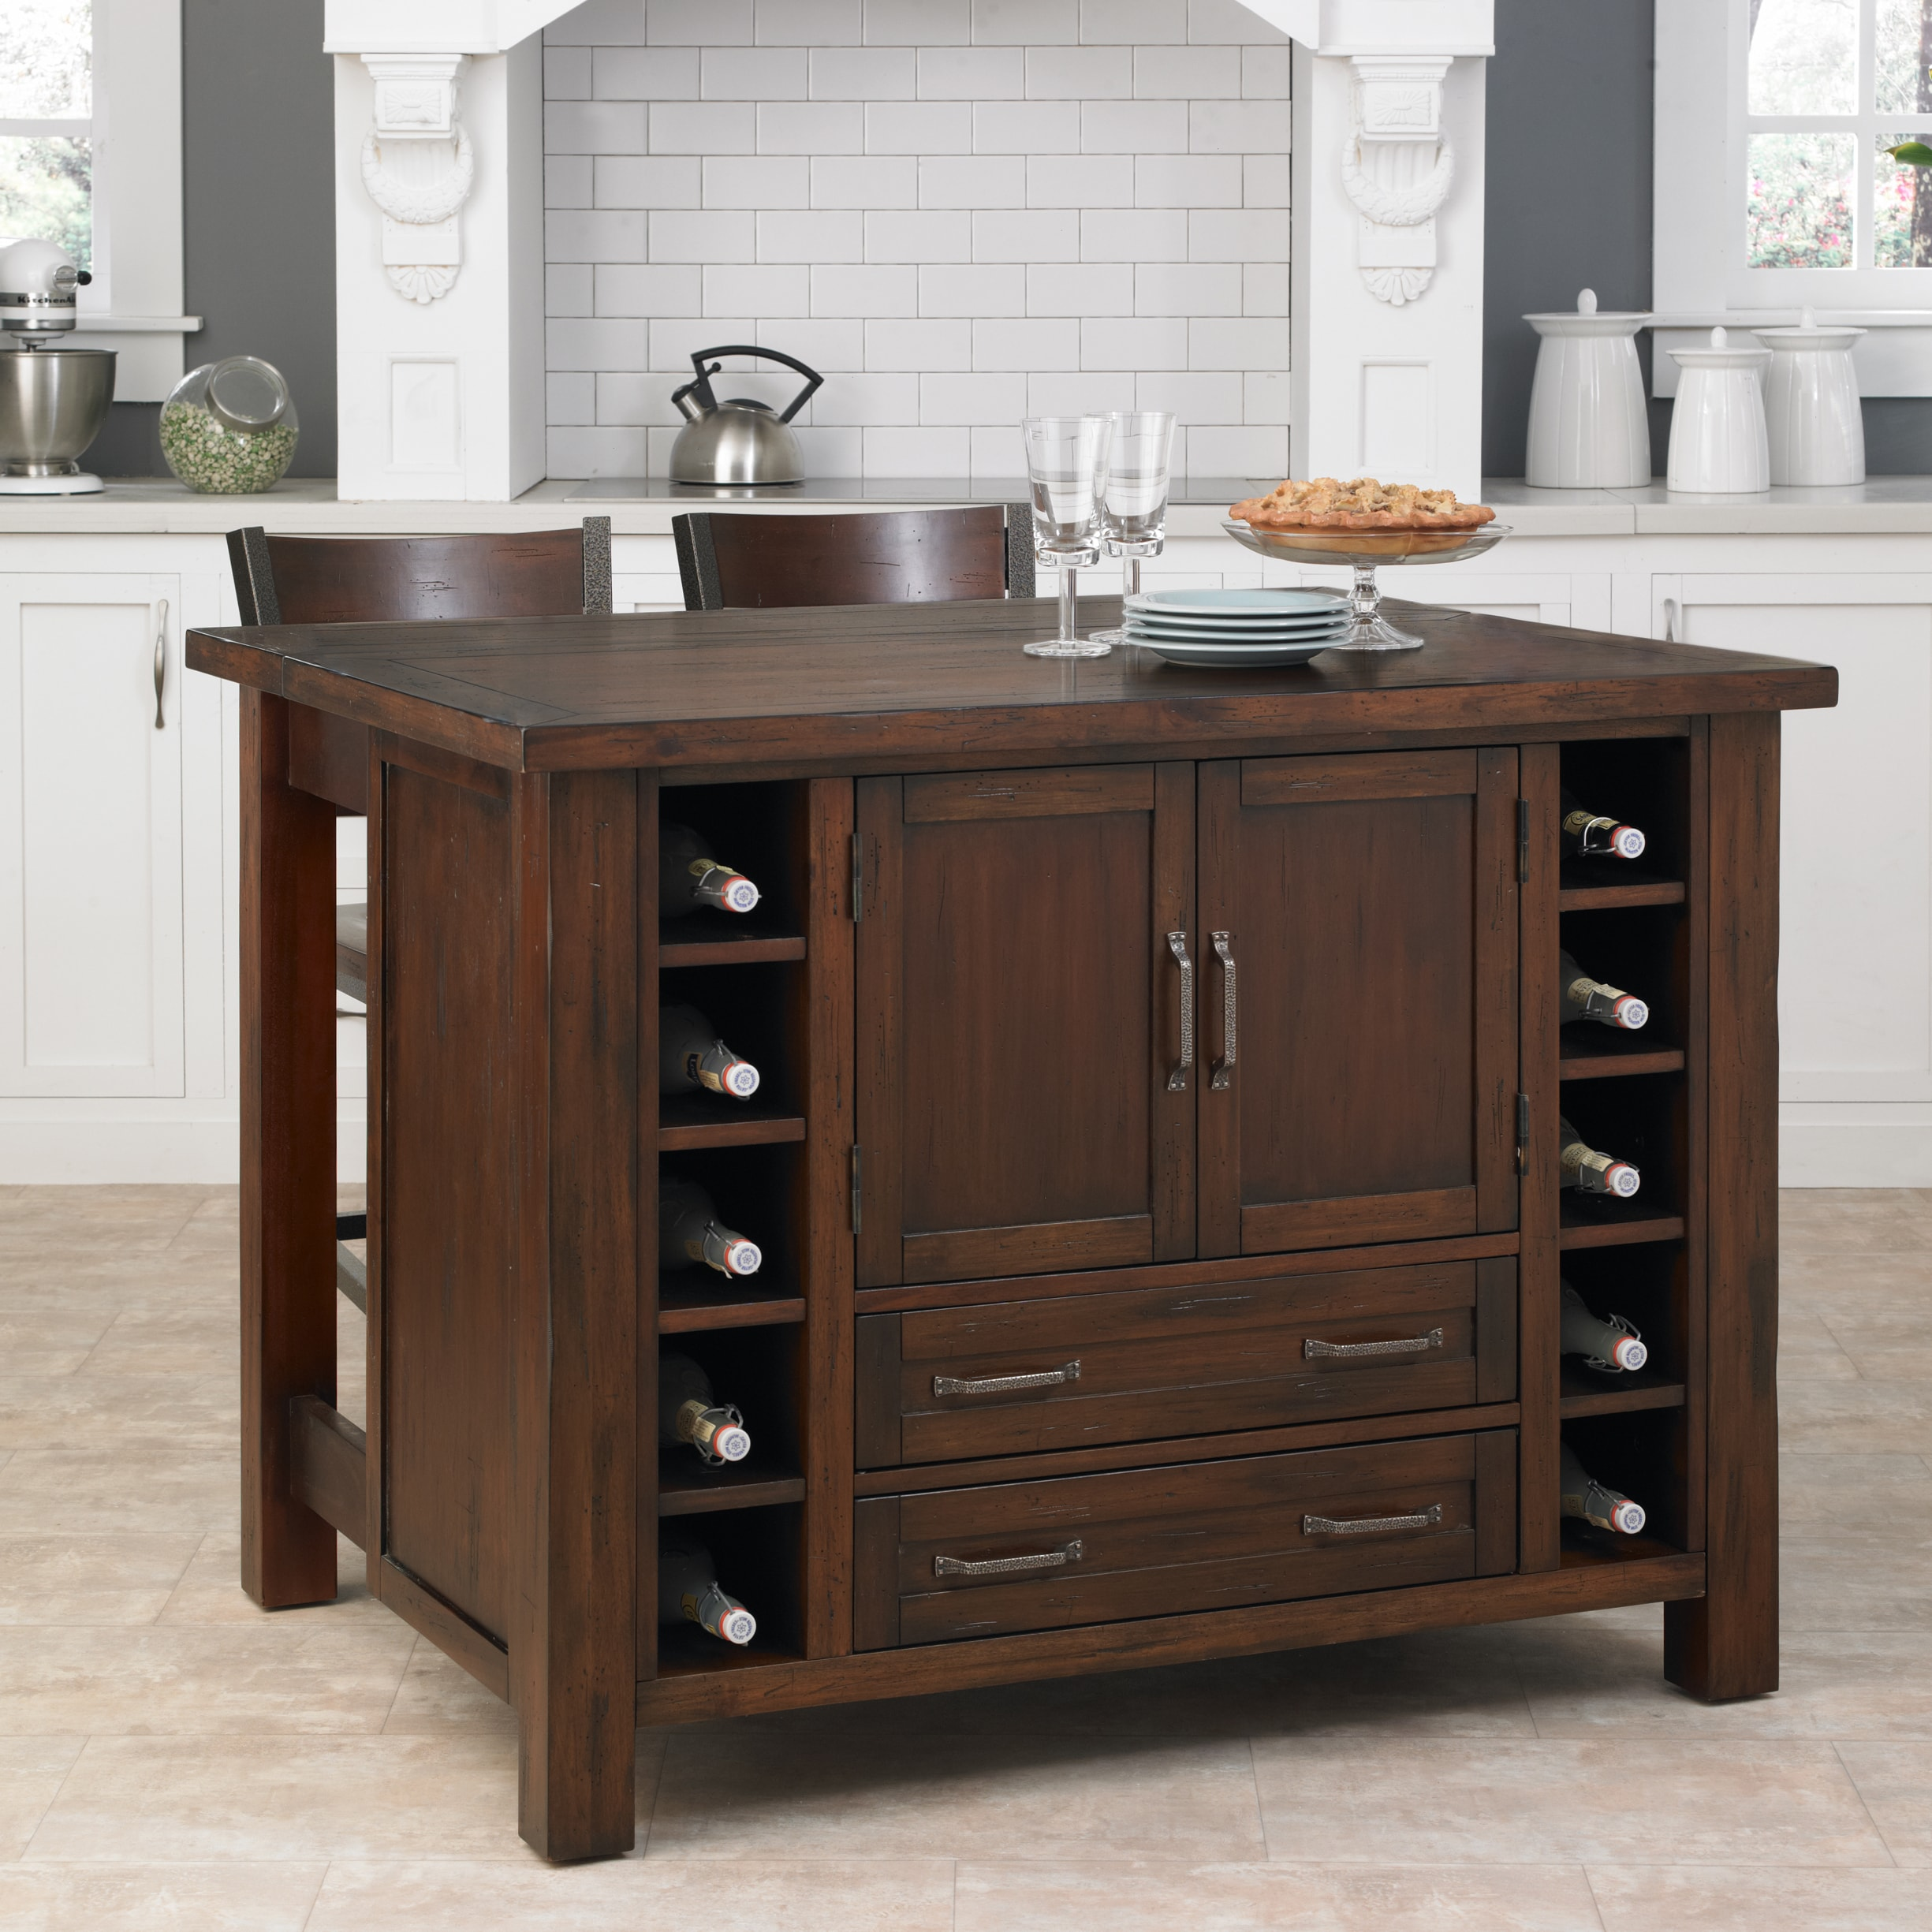 Cabin creek kitchen island breakfast bar with two stools - Kitchen island with stools ...